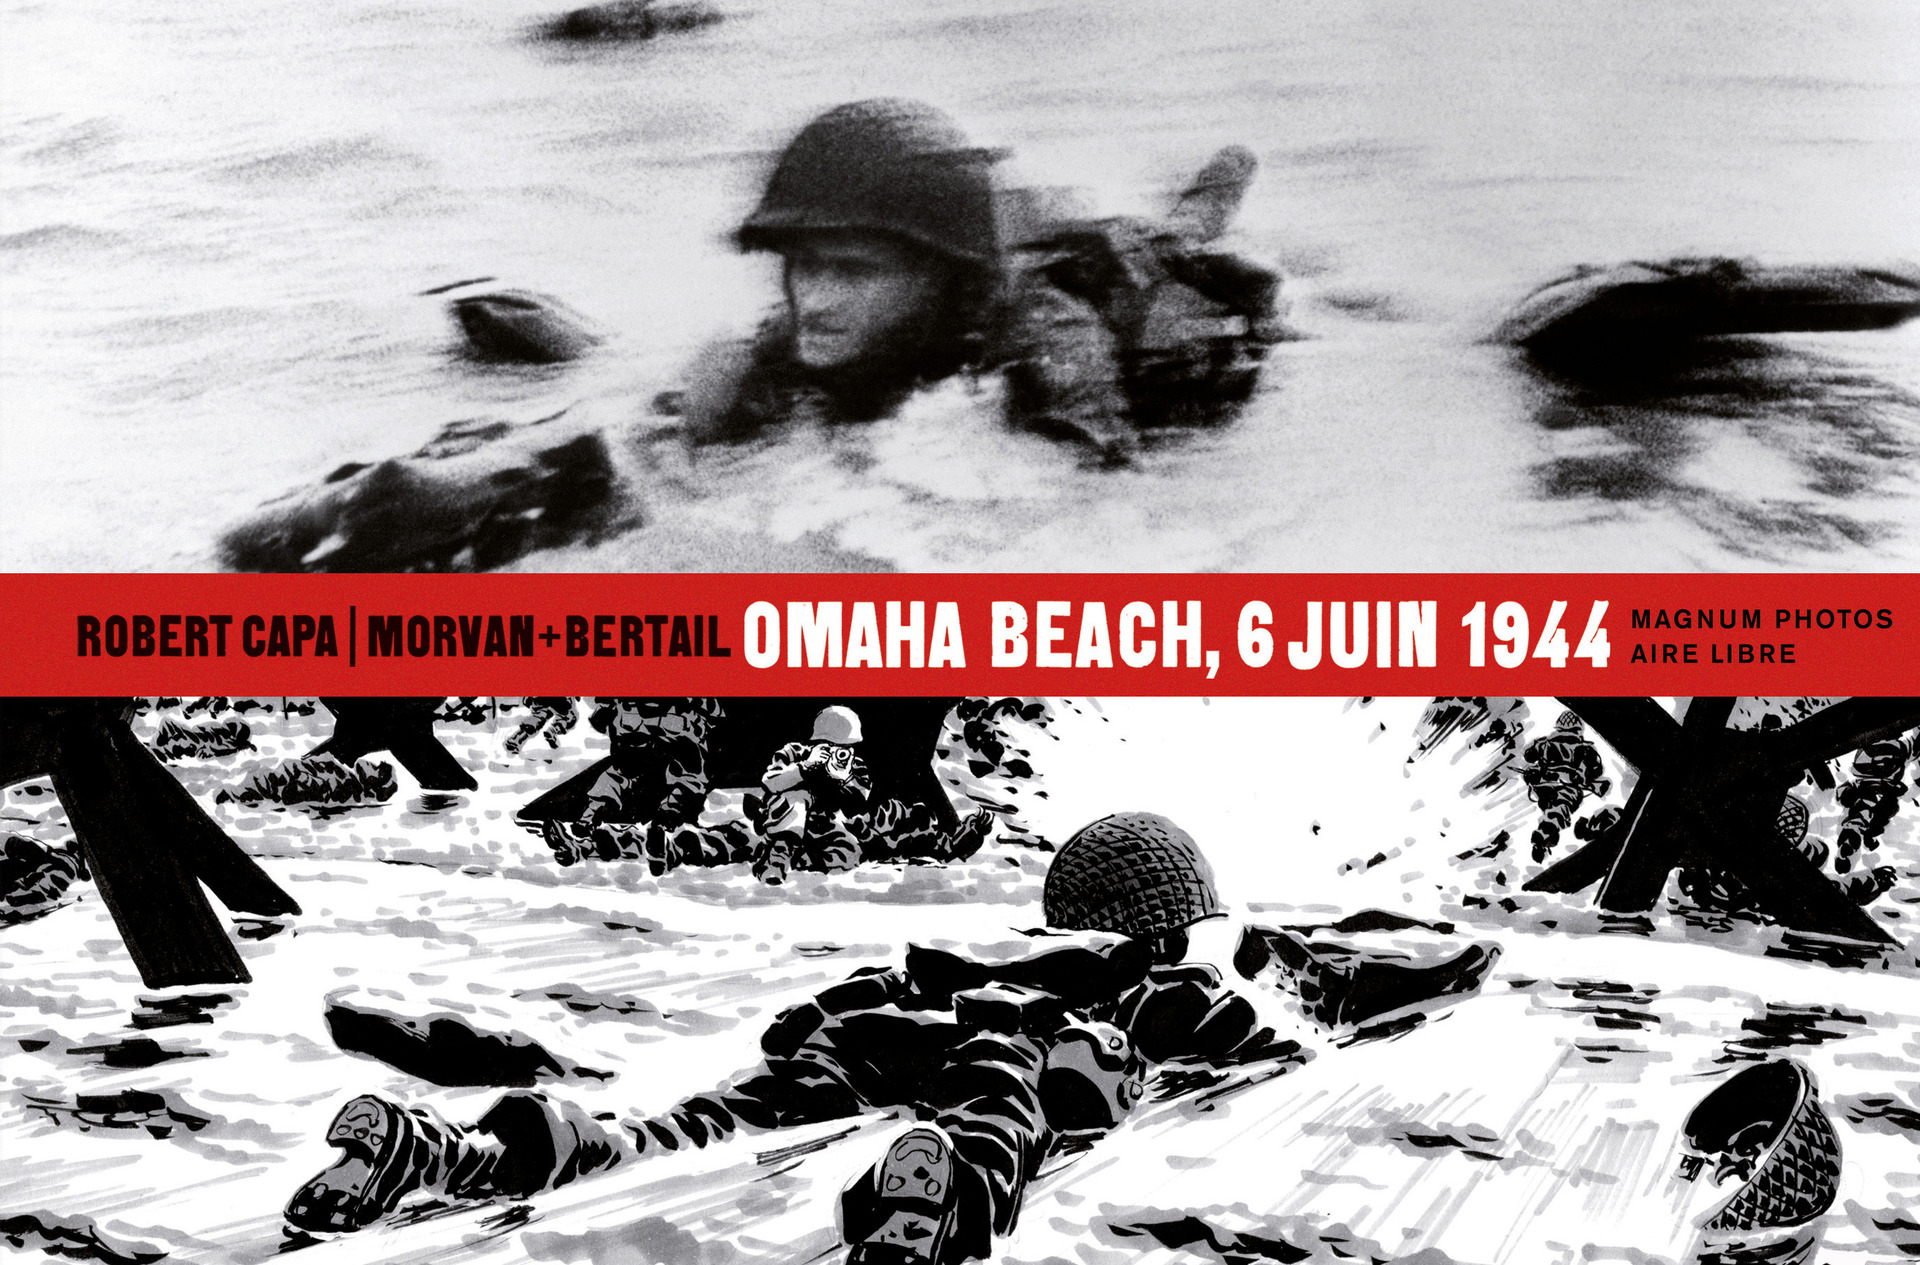 MAGNUM PHOTOS T1 OMAHA BEACH, 6 JUIN 1944